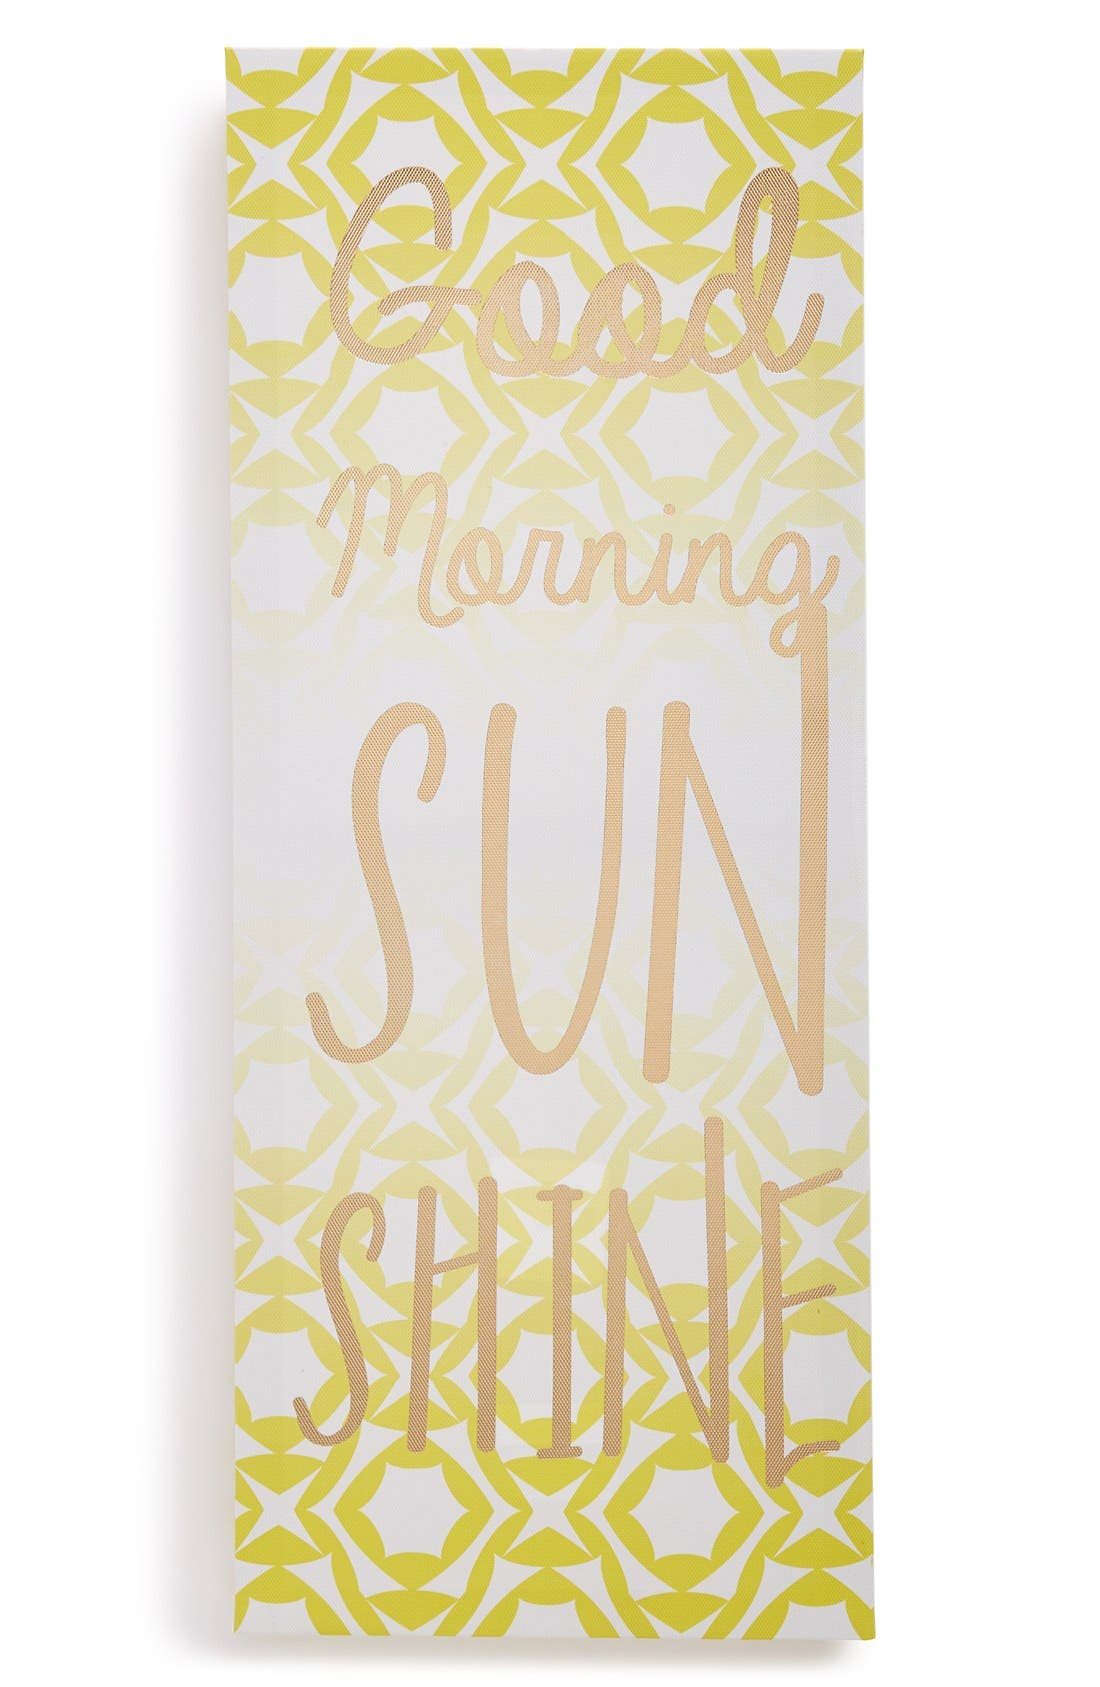 Alternate Image 1 Selected - Crystal Art Gallery 'Good Morning Sunshine' Wrapped Canvas Wall Art